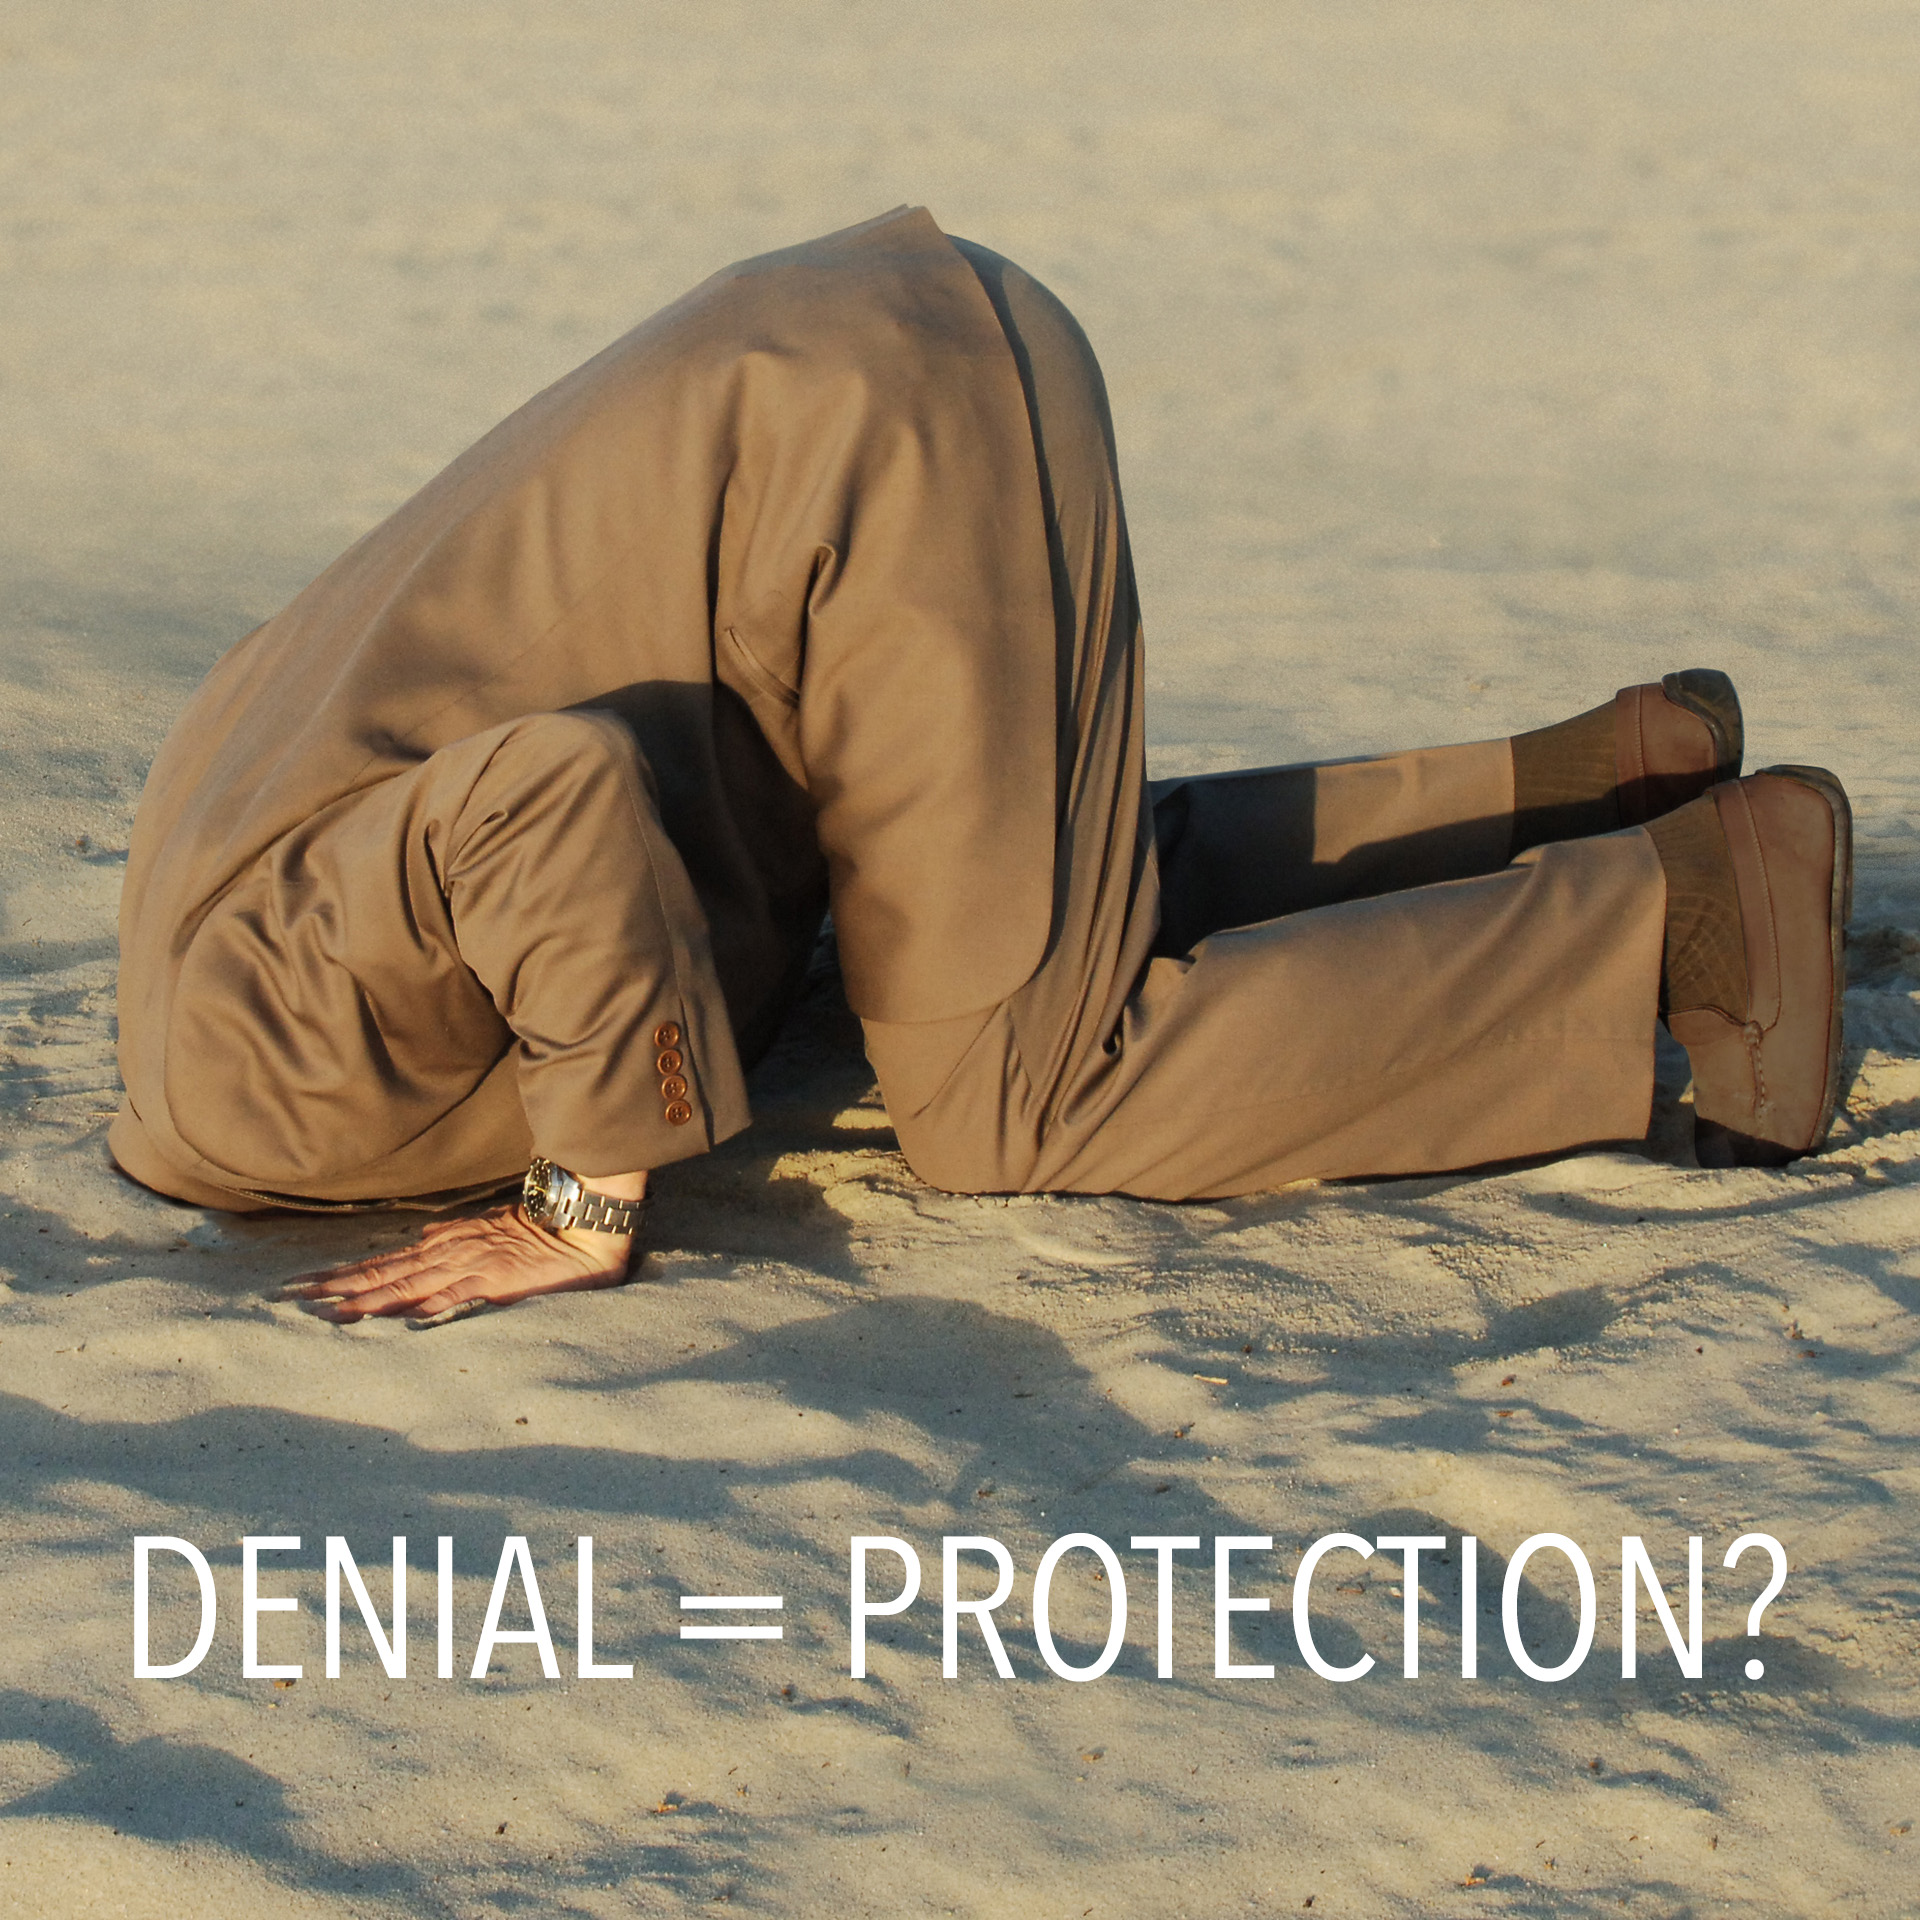 DENIAL = PROTECTION?